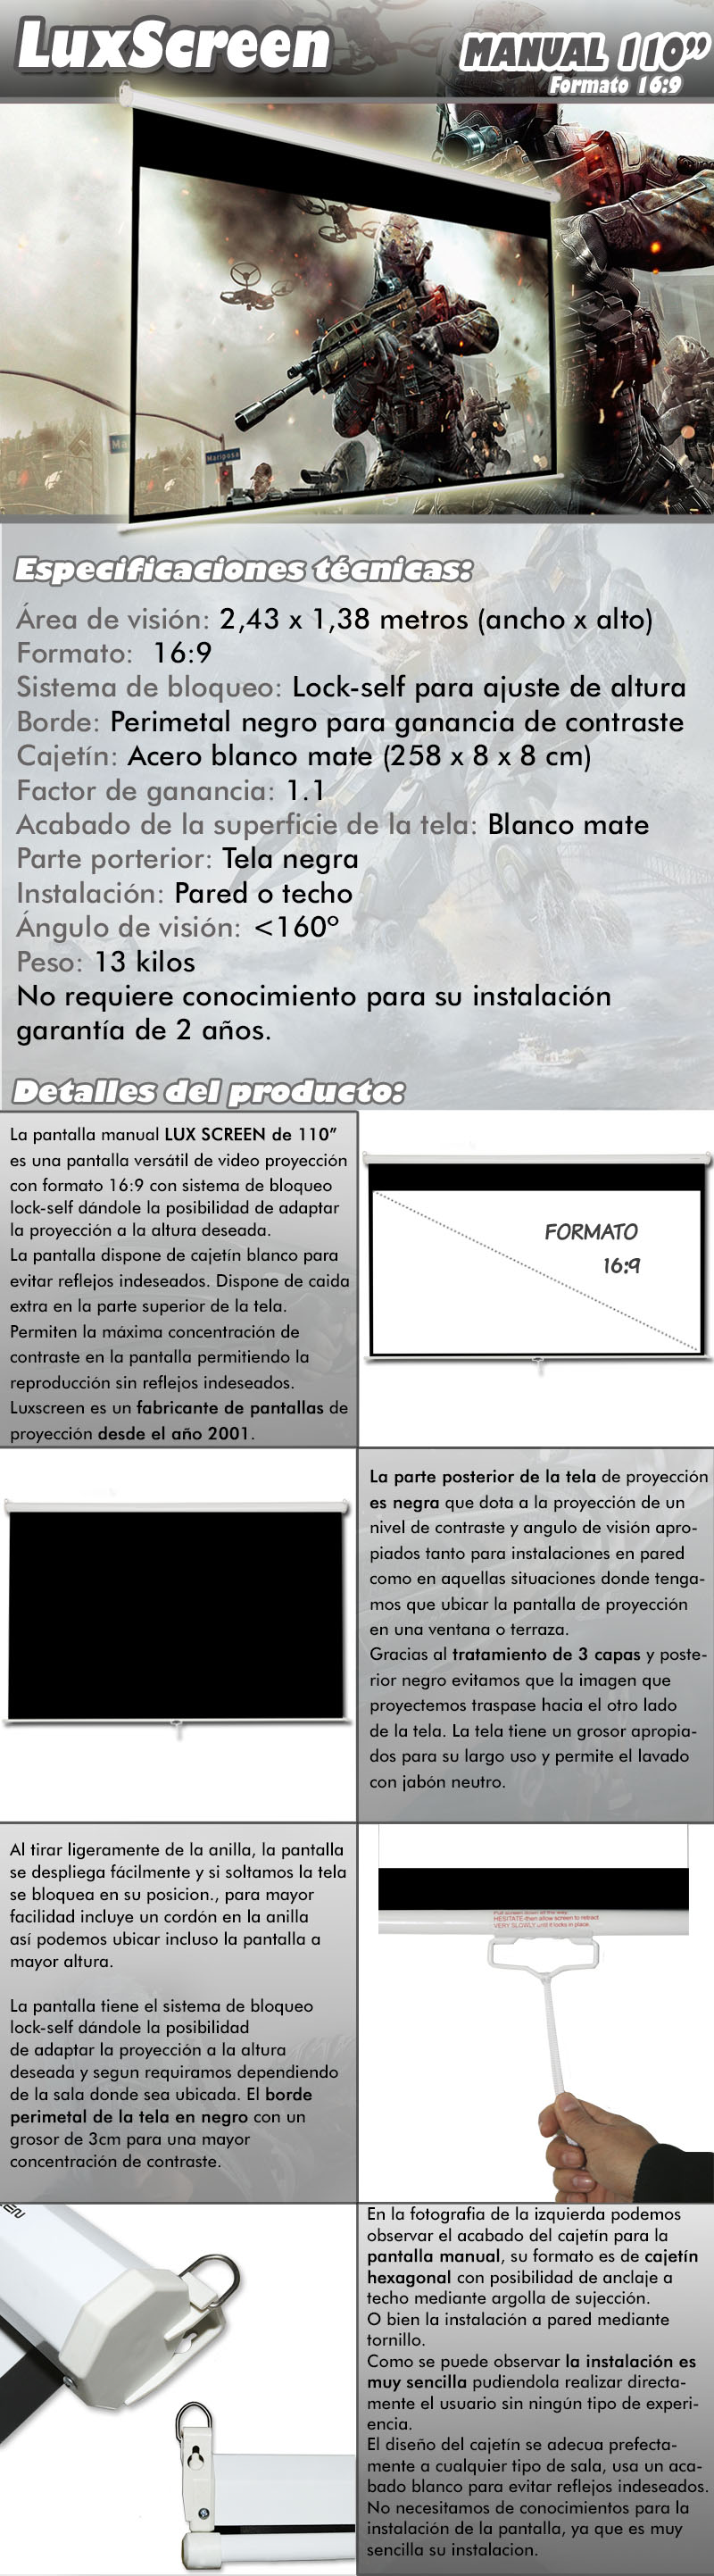 pantalla de proyeccion manual de 110